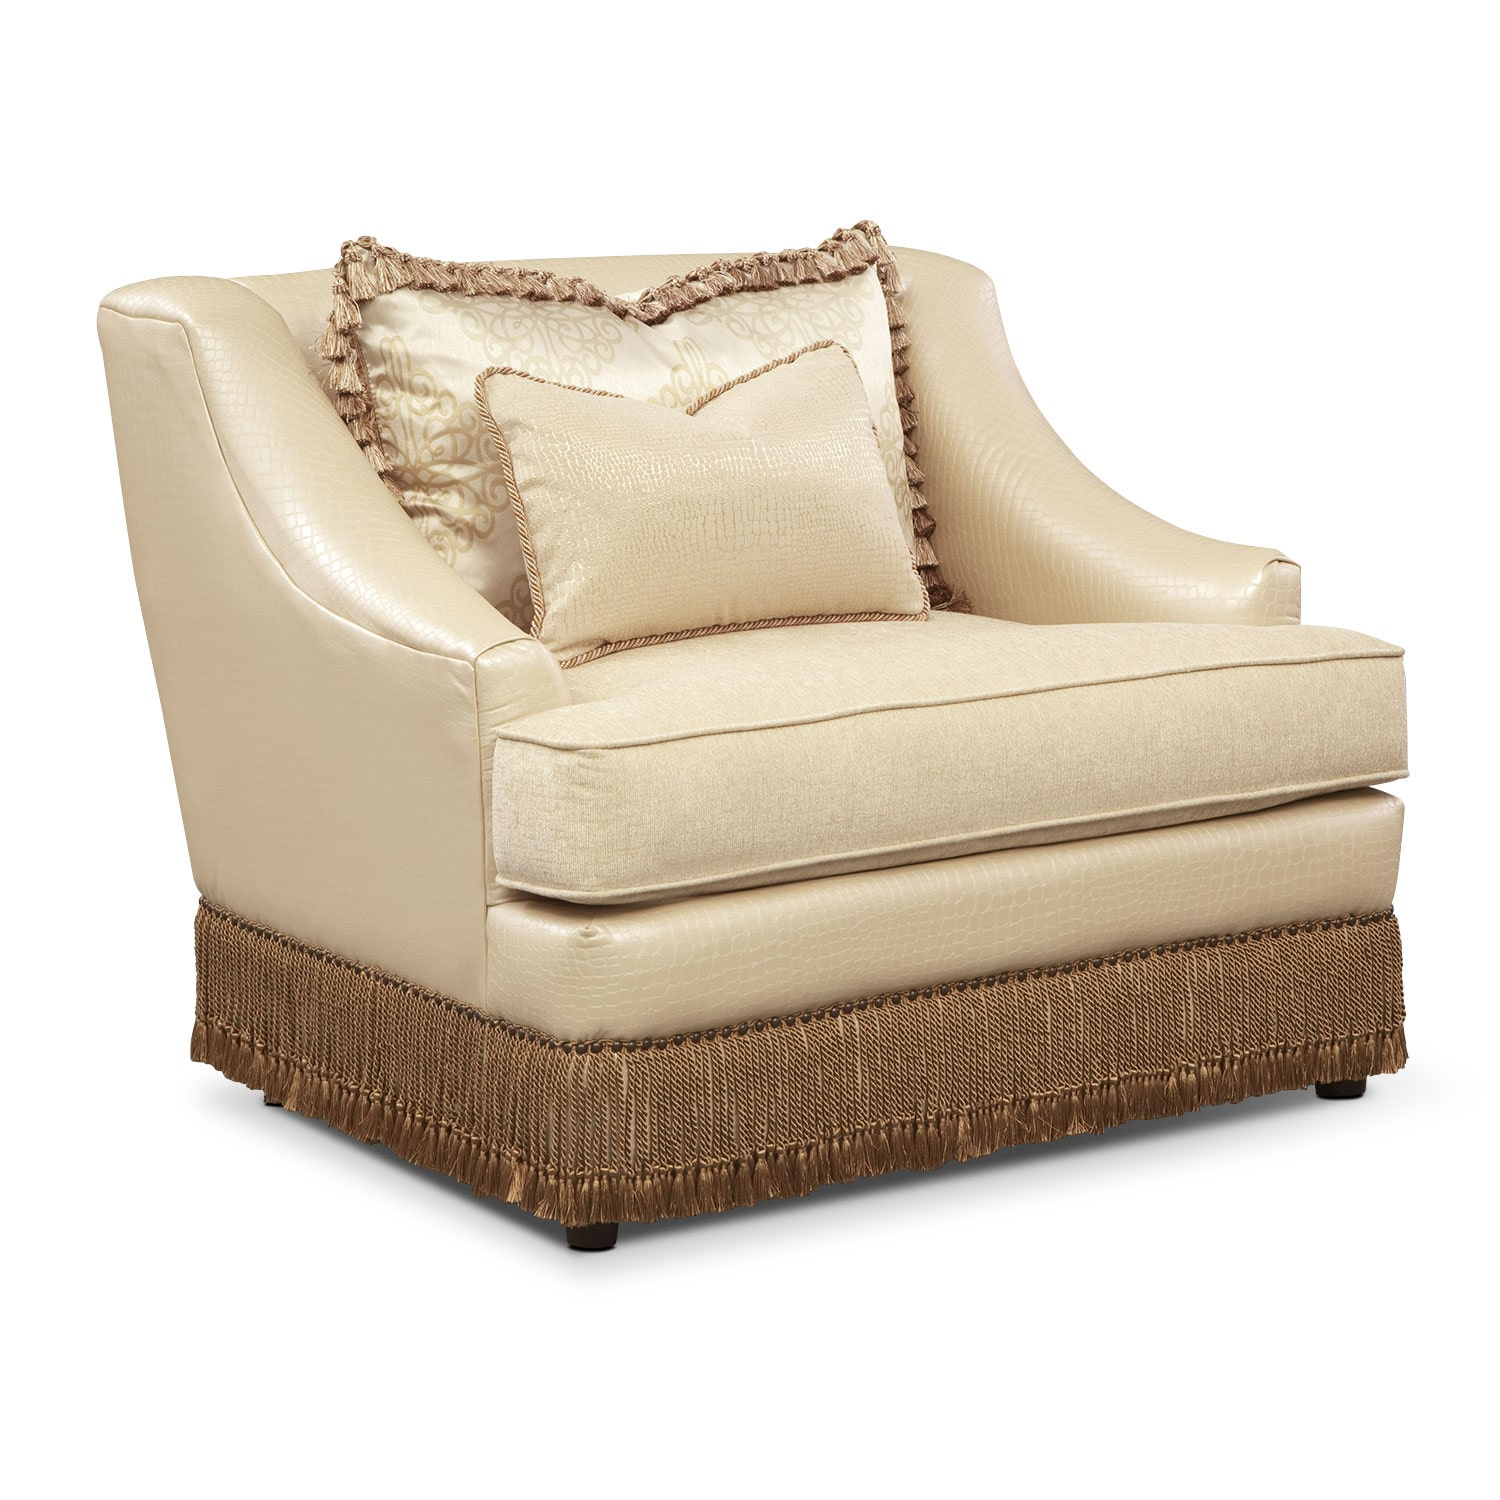 Living Room Furniture - Vivienne Chair